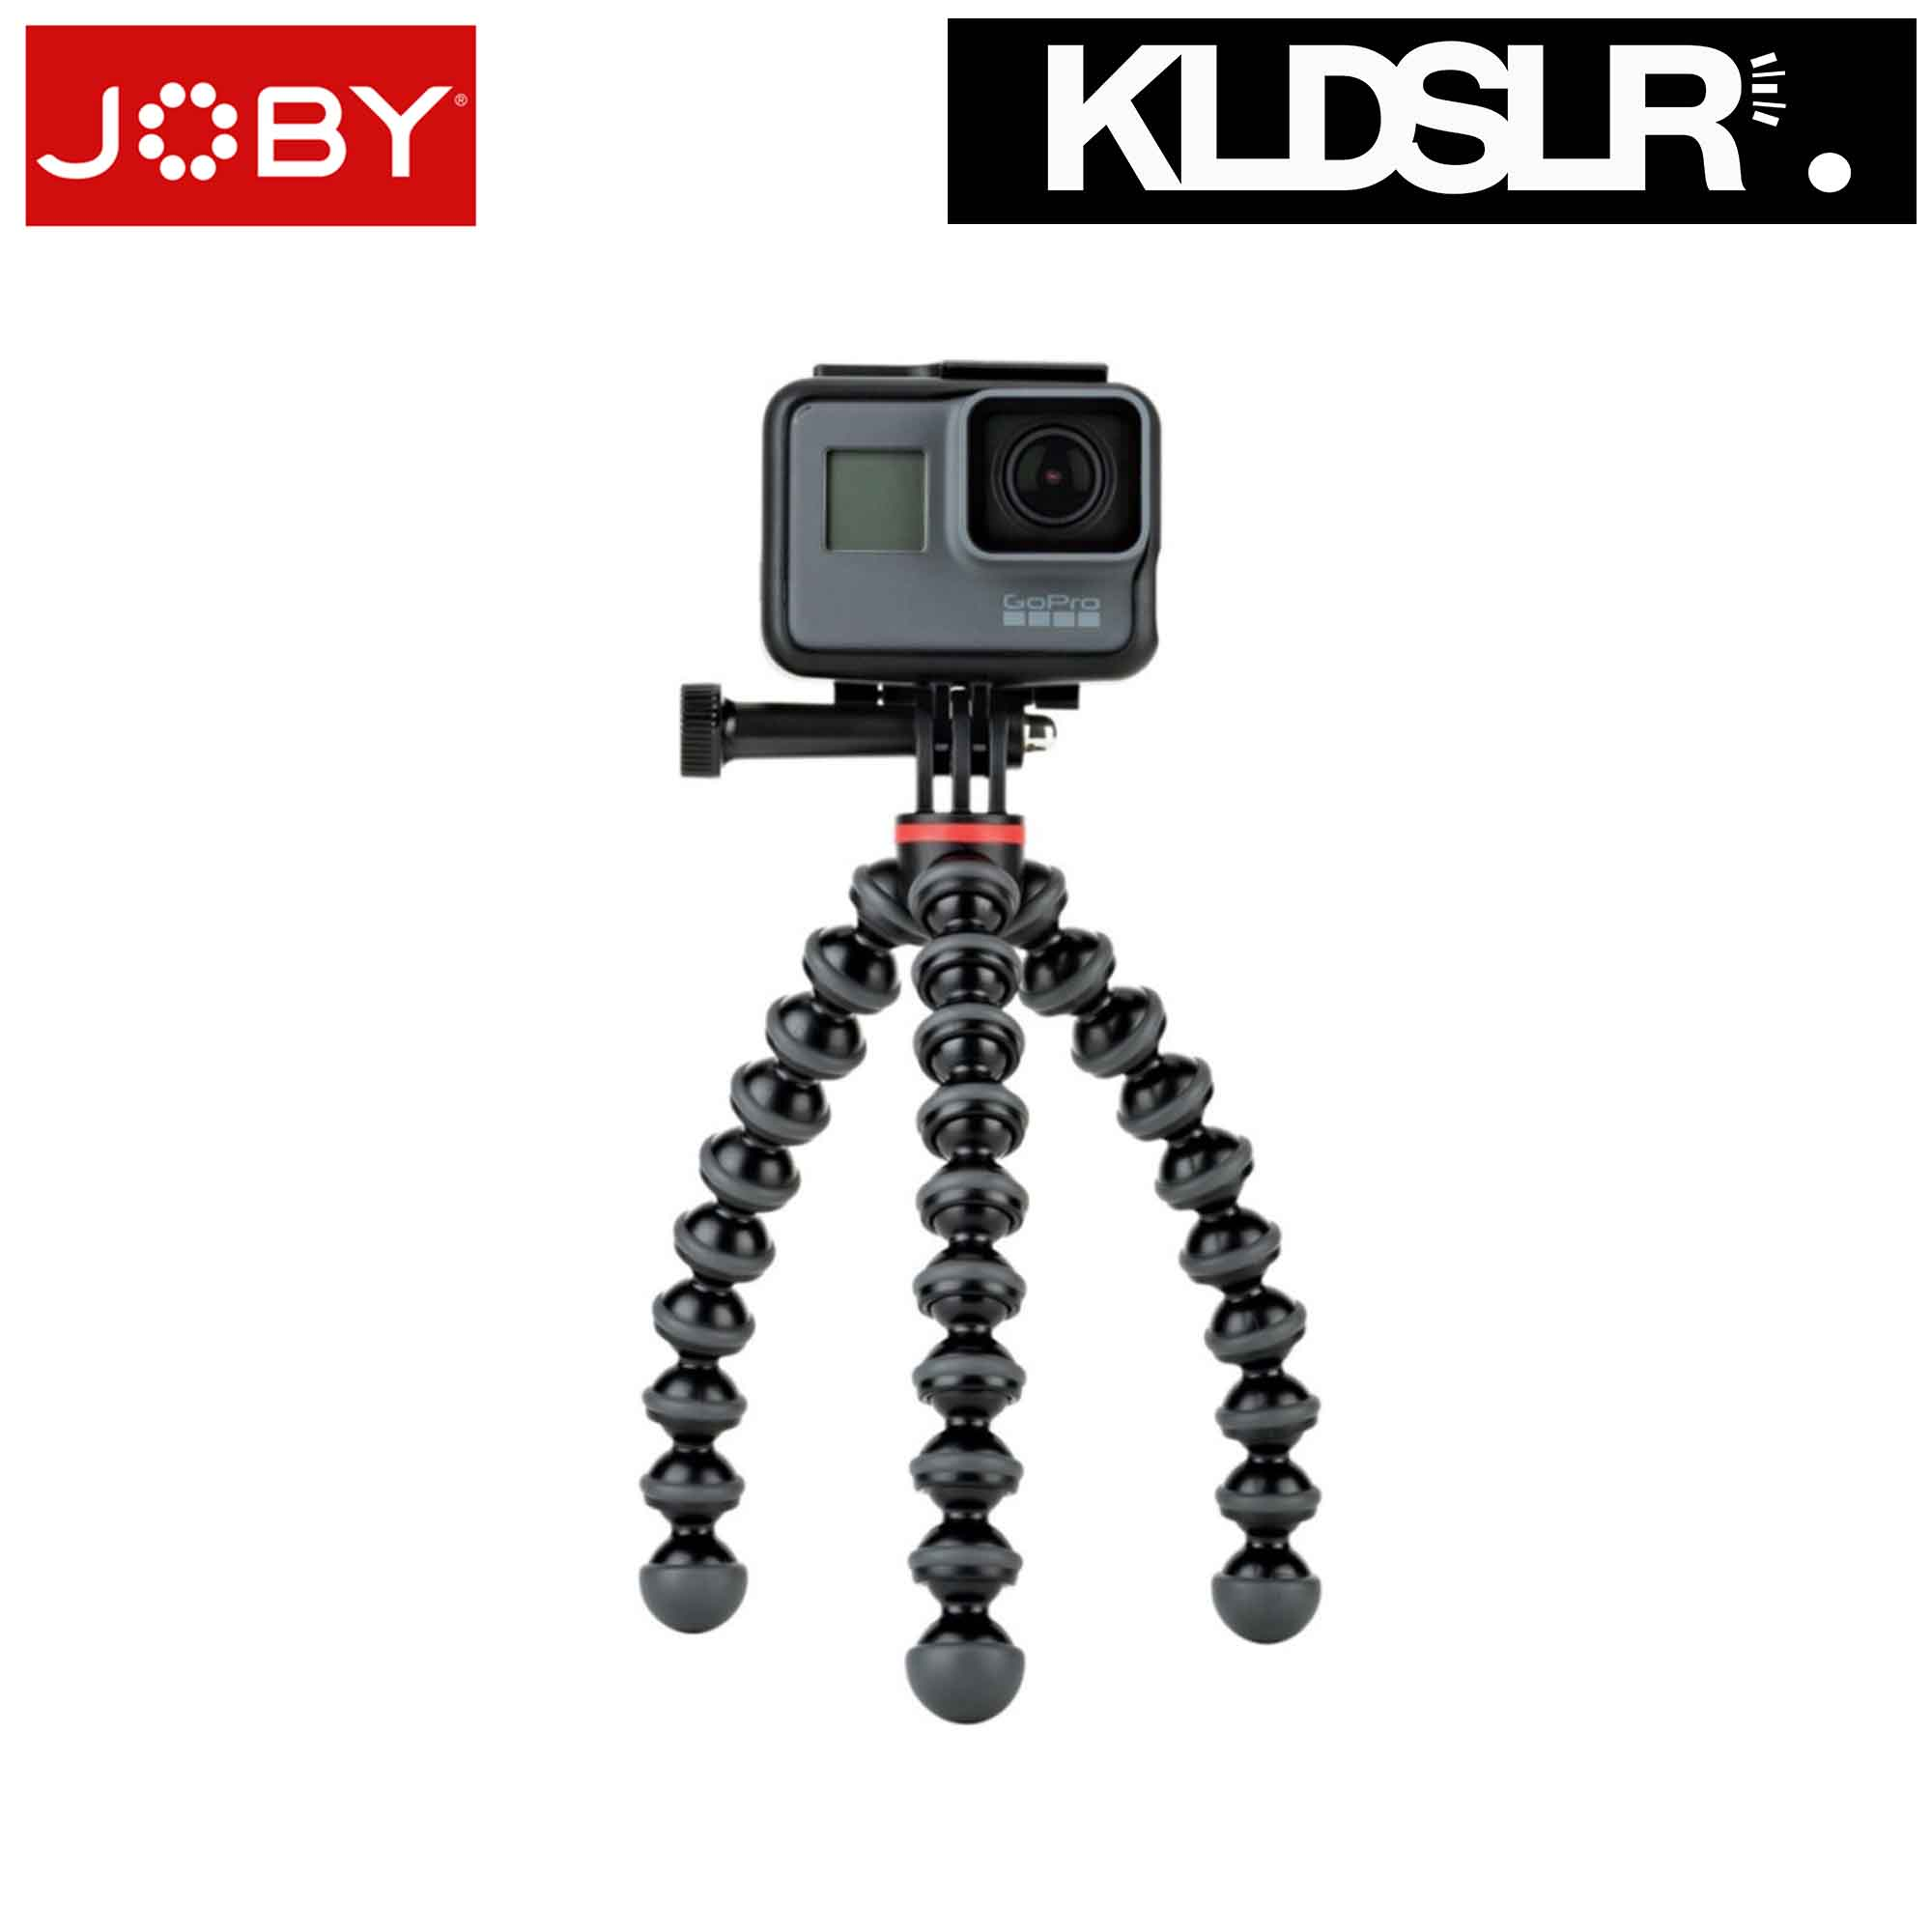 Joby GorillaPod 500 Action Flexible Mini-Tripod (Black/Charcoal)